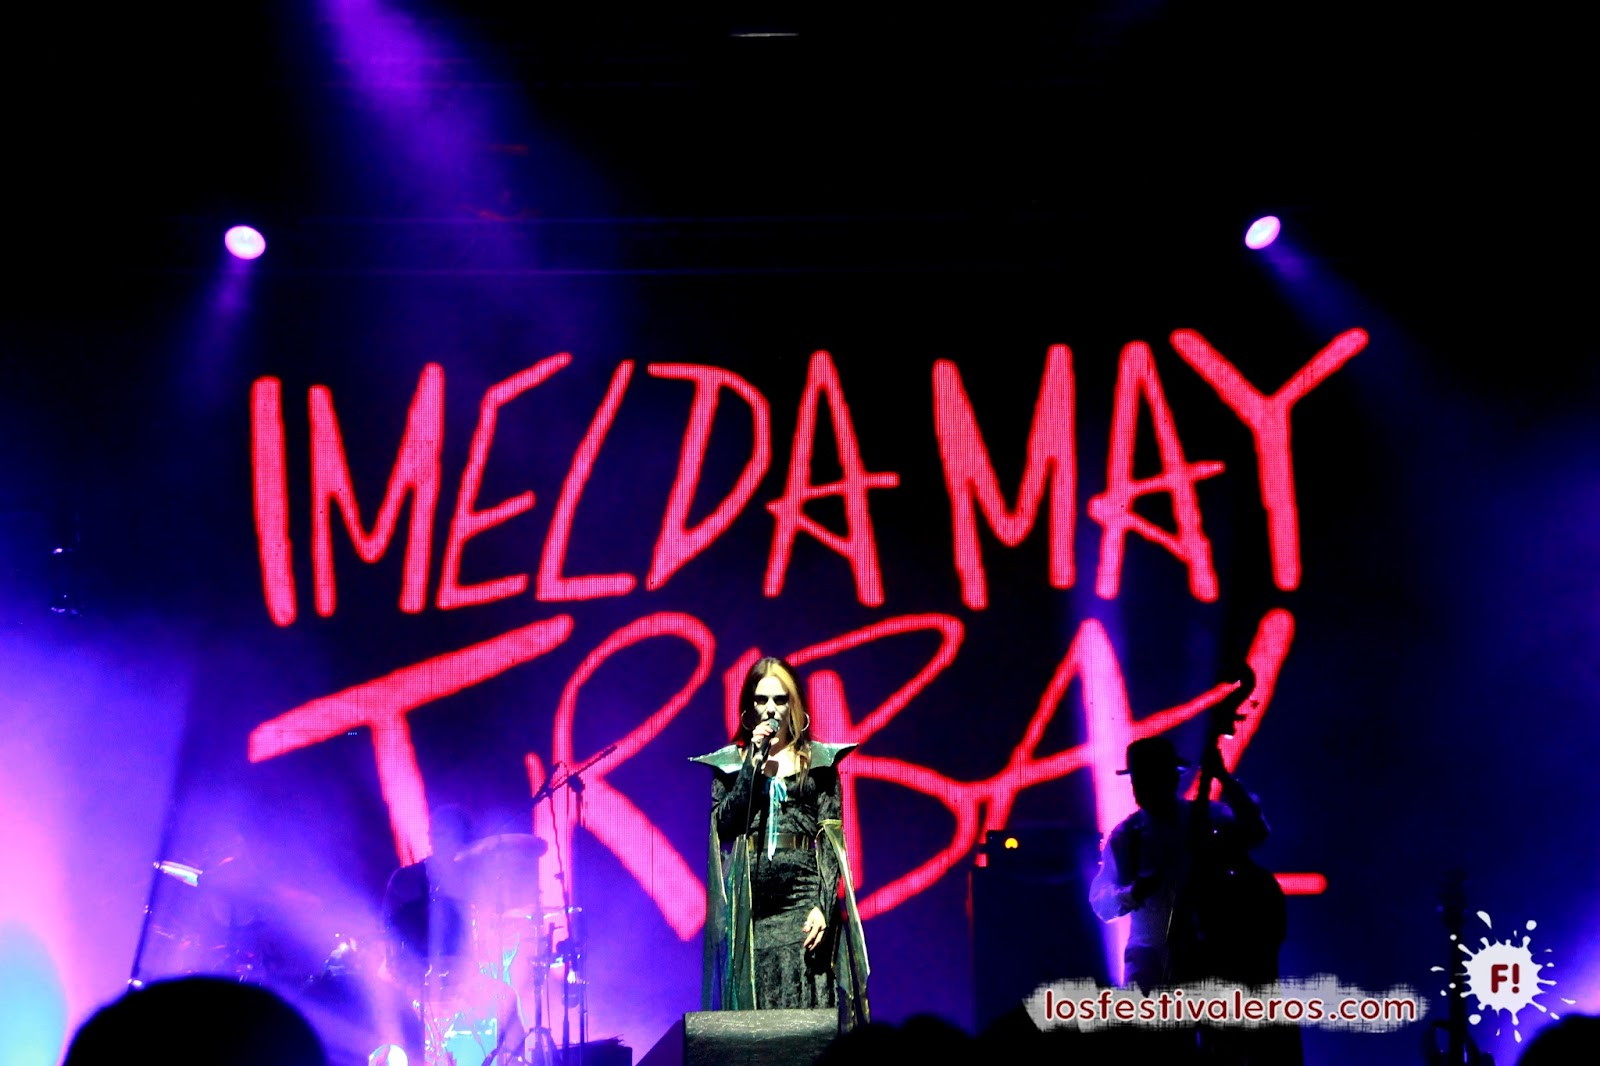 Imelda May, BIME, 2014, Halloween, Concierto, Festival